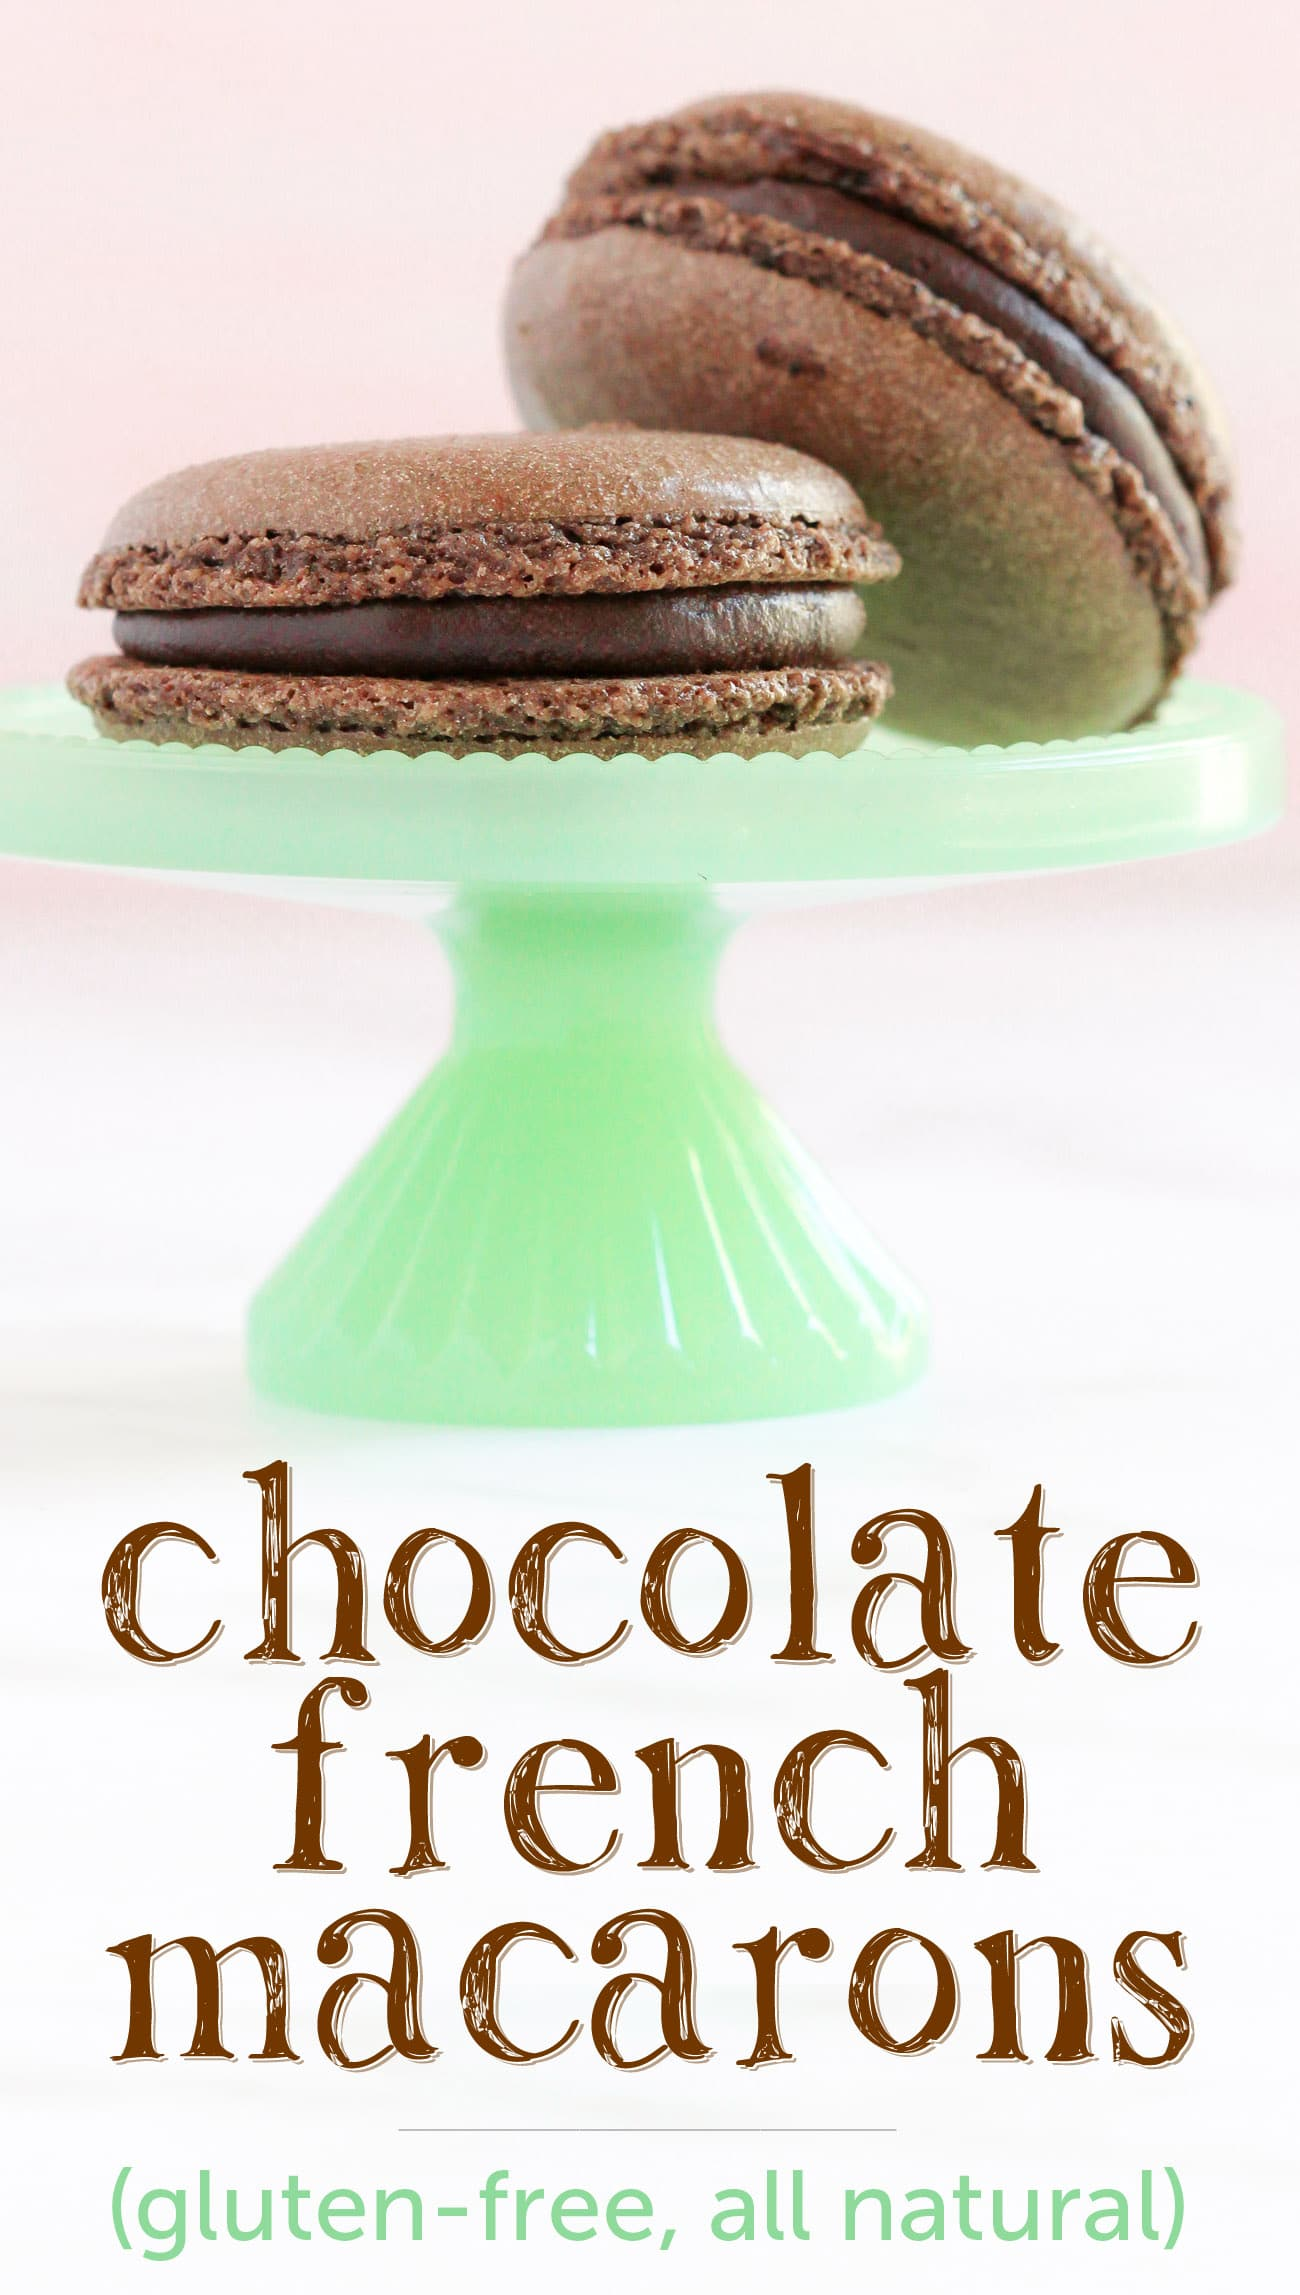 These Gluten Free Chocolate French Macarons are perfectly sweet and chewy, thanks to the almond meal and dark cocoa powder! Made without the bleached white sugar and artificial flavors, yet you'd never know! #chocolate #frenchmacarons #macarons #glutenfree #glutenfreemacarons #valentinesday